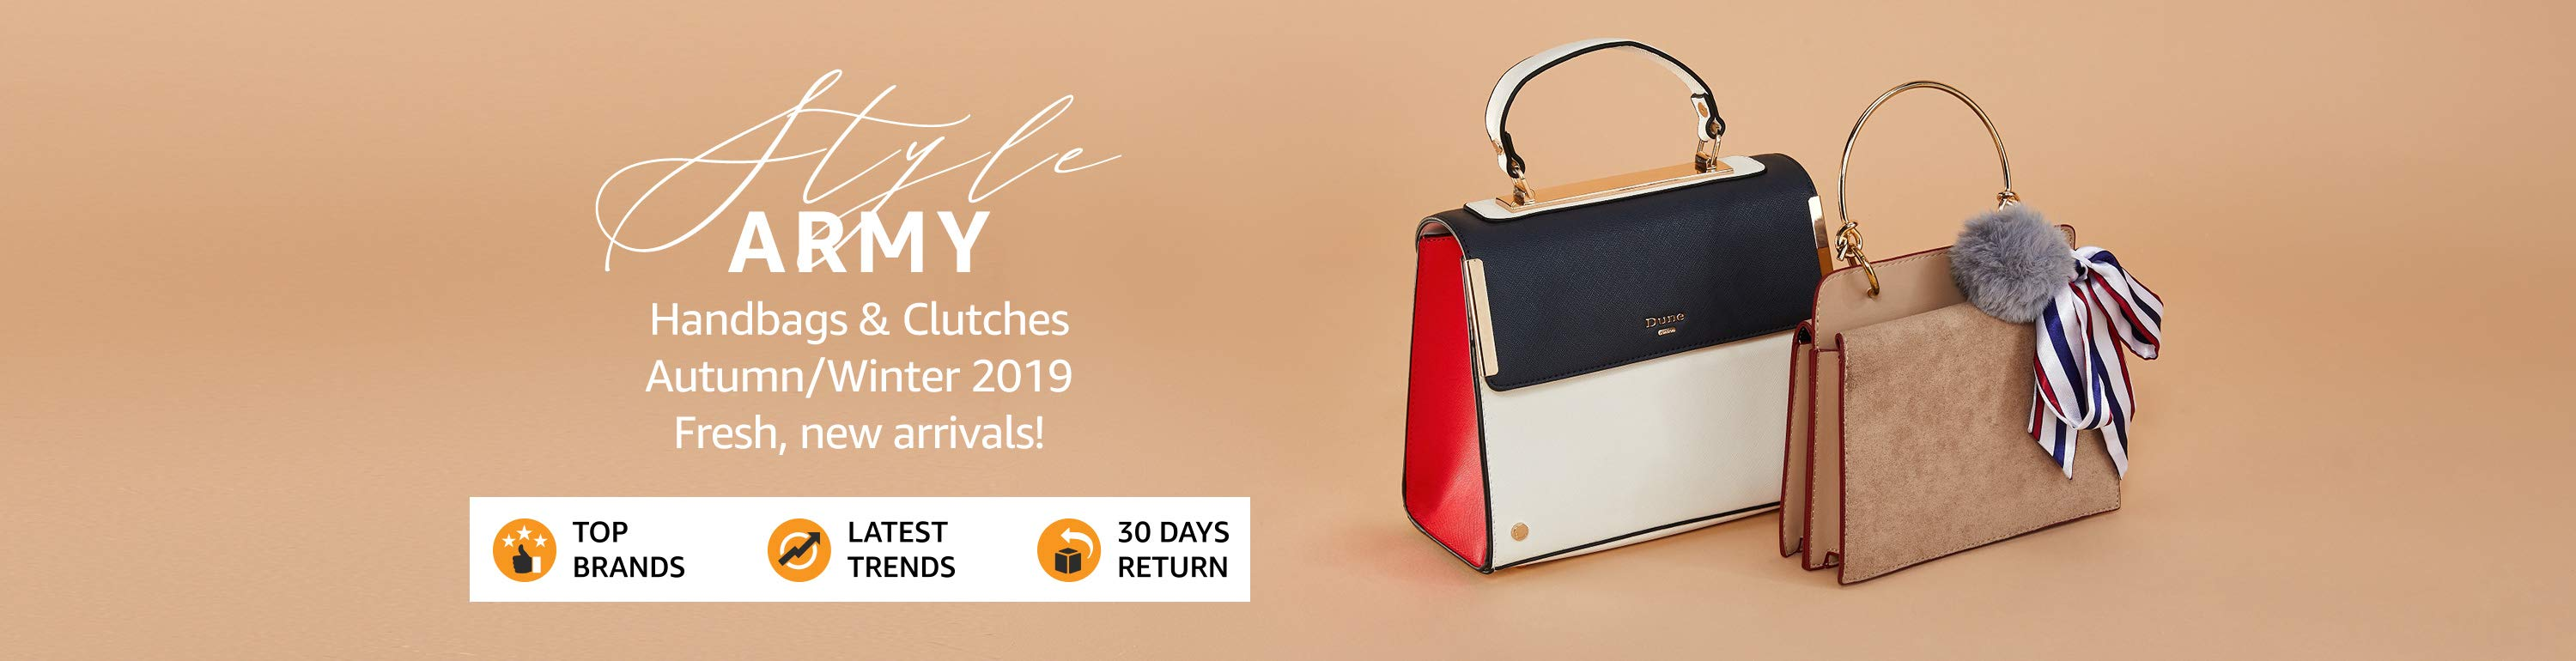 Great Indian Festival: Upto 80% Off on Handbags & Clutches + Extra 10% Off on SBI Bank Debit & Credit Cards (29th Sept - 4th Oct)